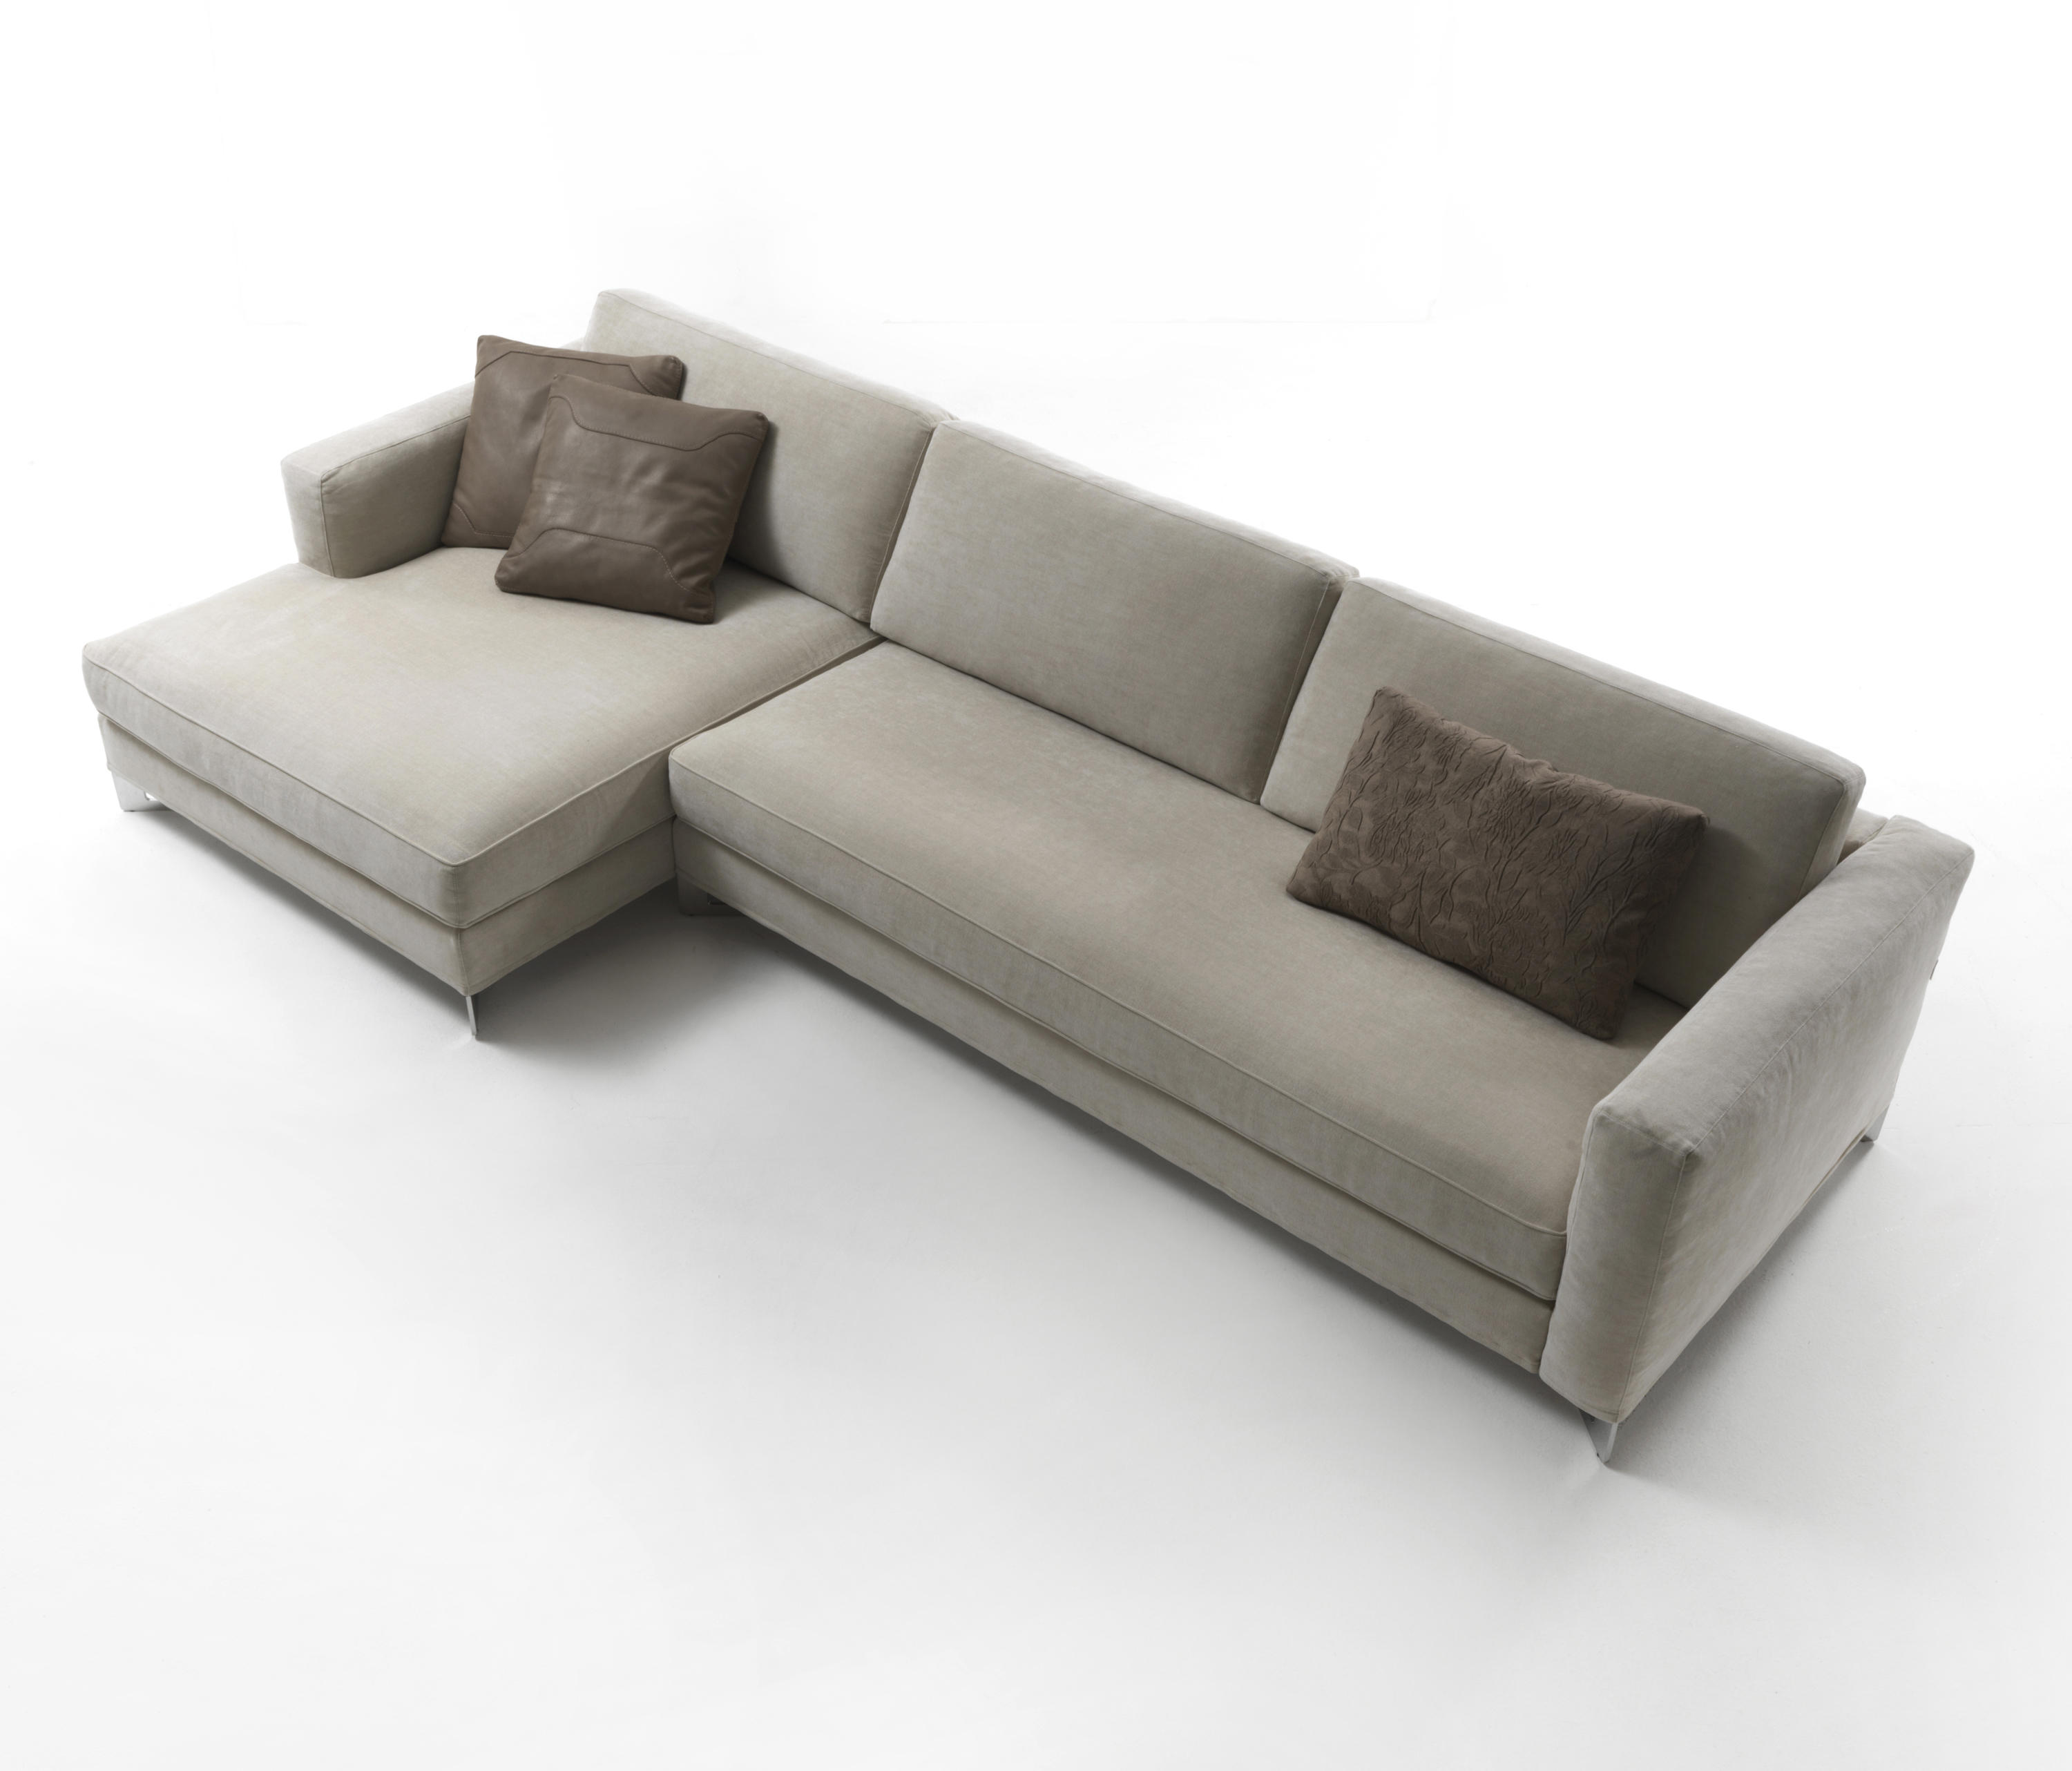 Marvelous Davis Out Sofas From Frigerio Architonic Gmtry Best Dining Table And Chair Ideas Images Gmtryco